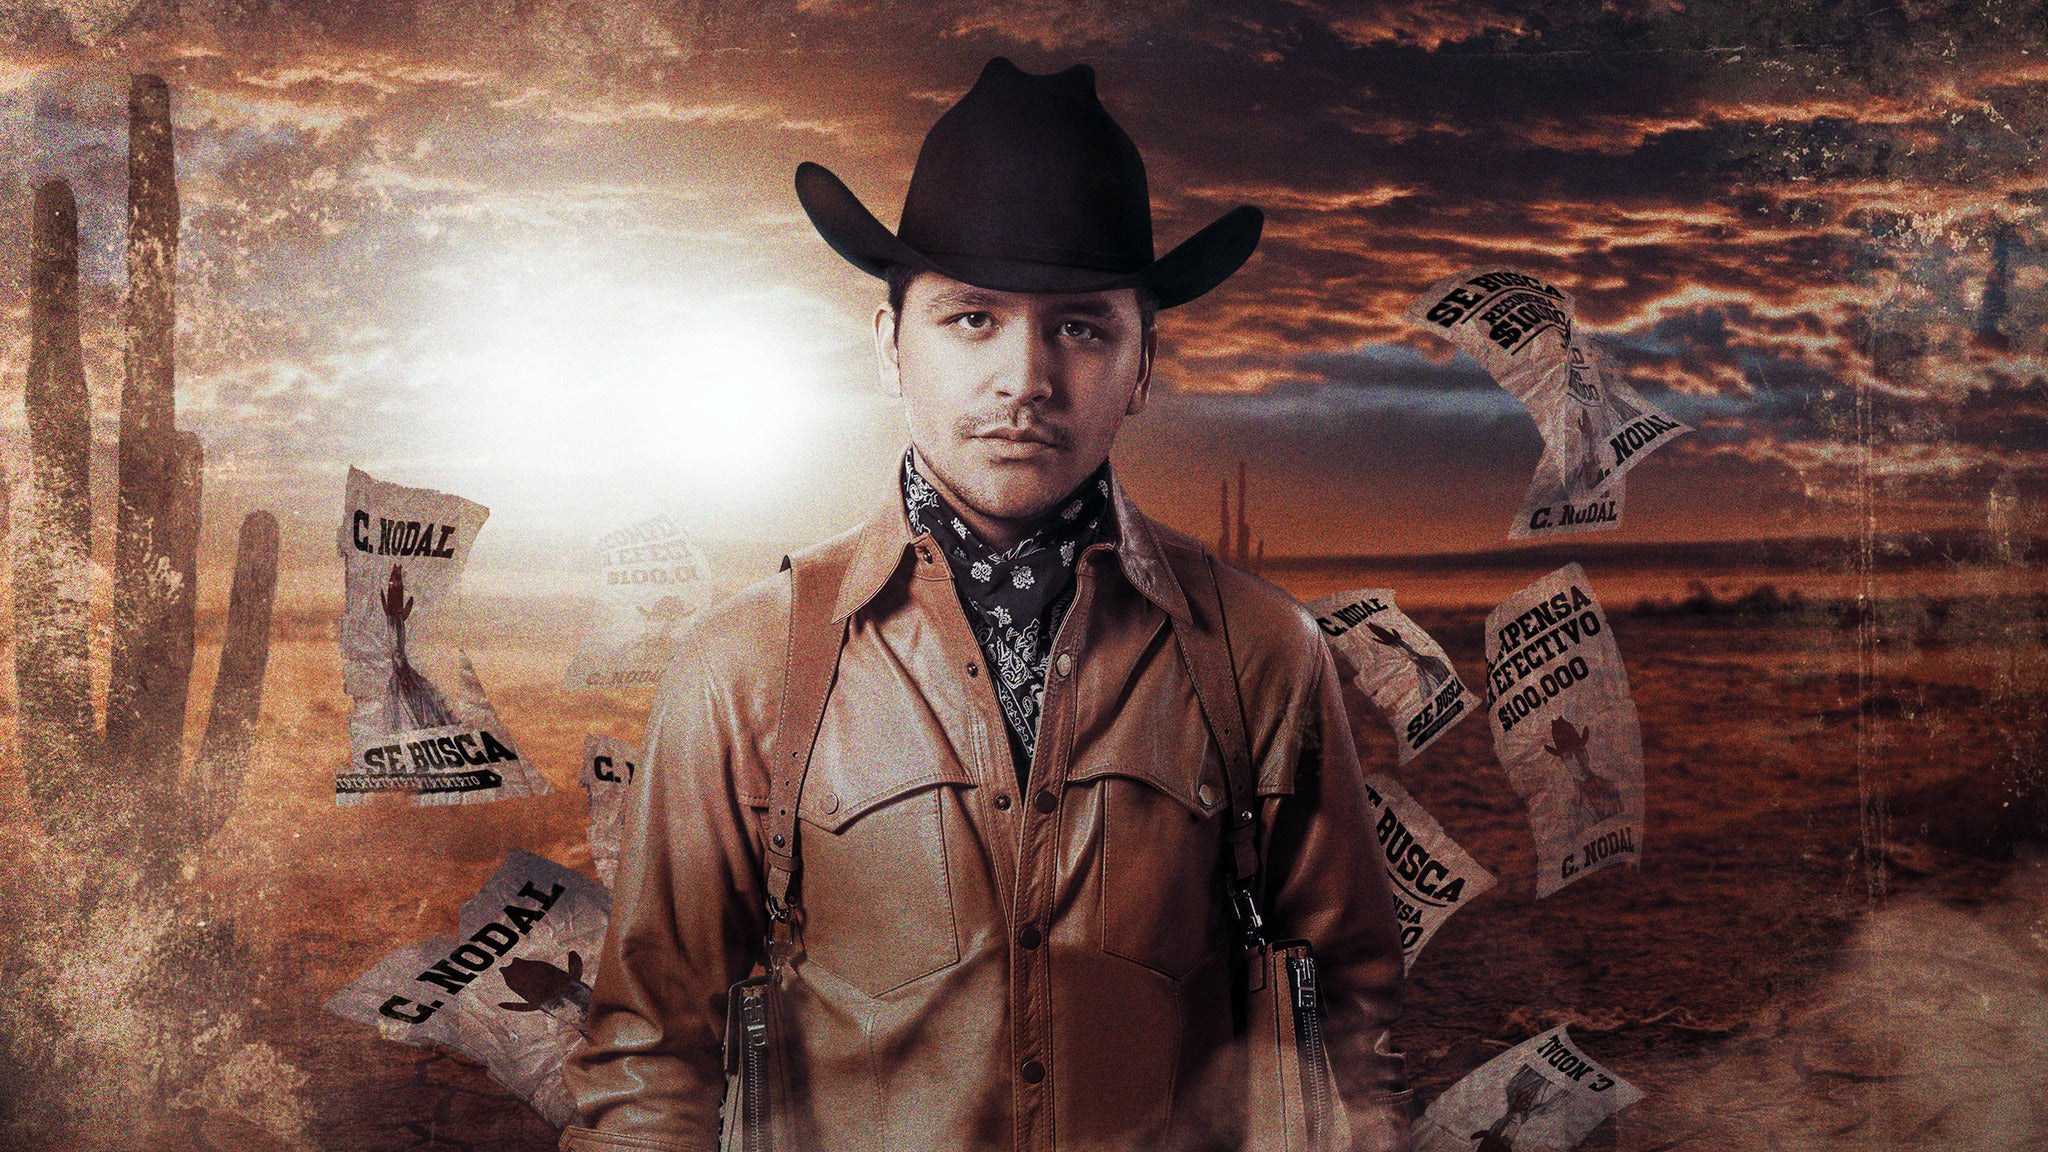 Christian Nodal at Gas South Arena